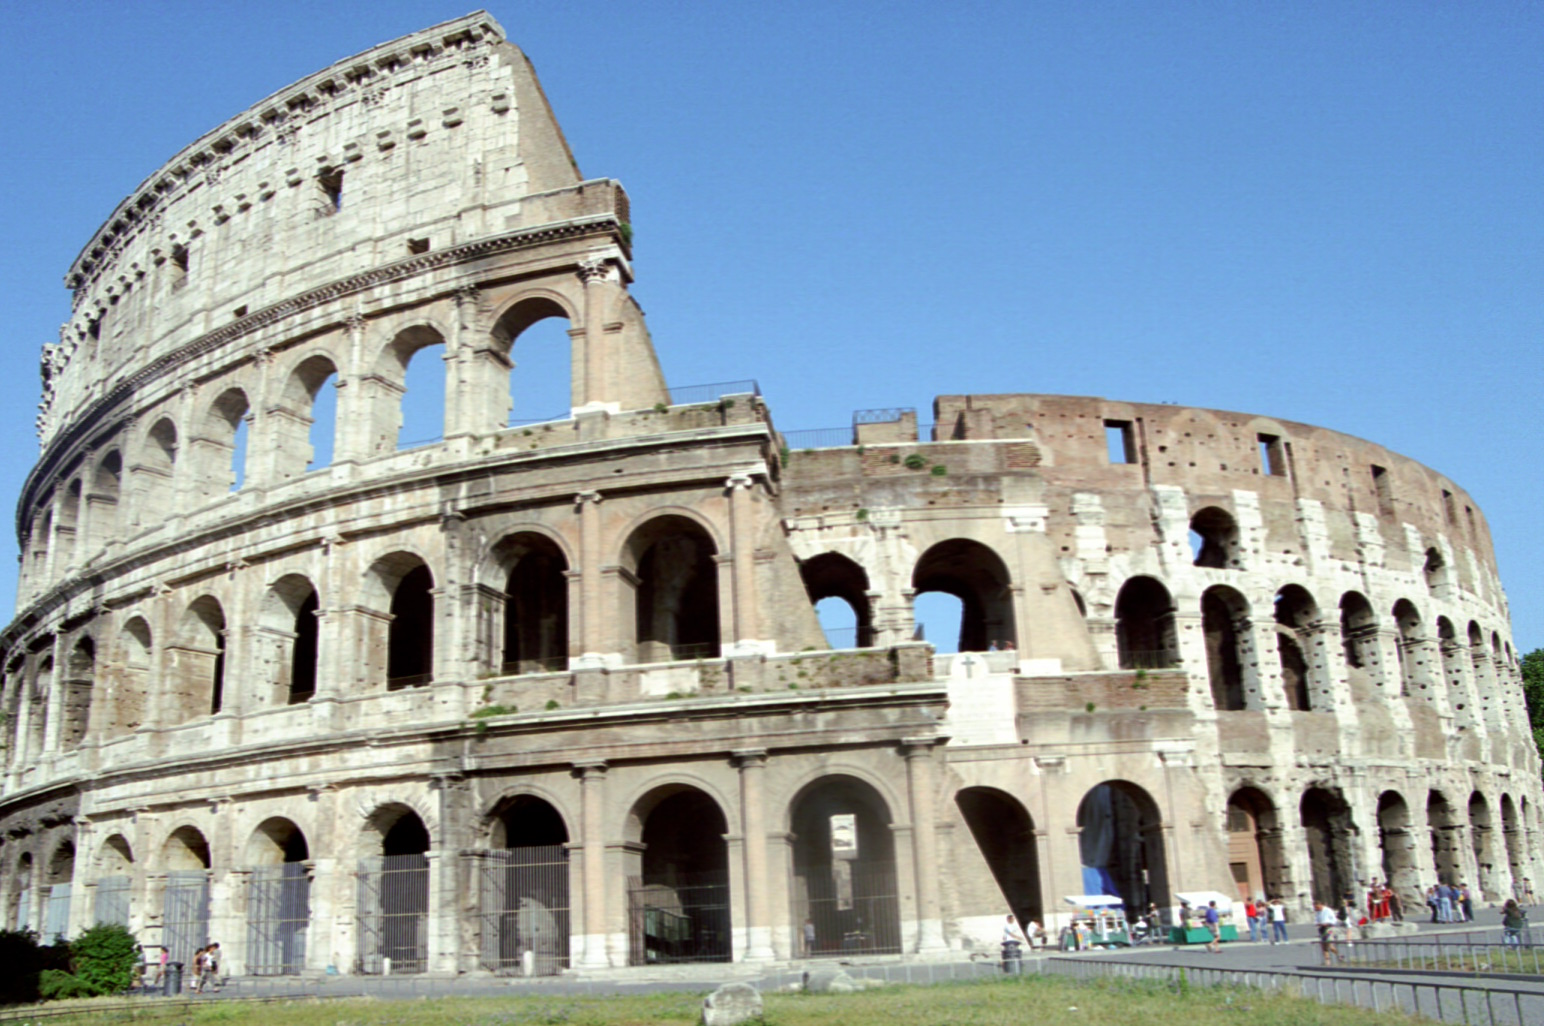 Colosseum of Rome.